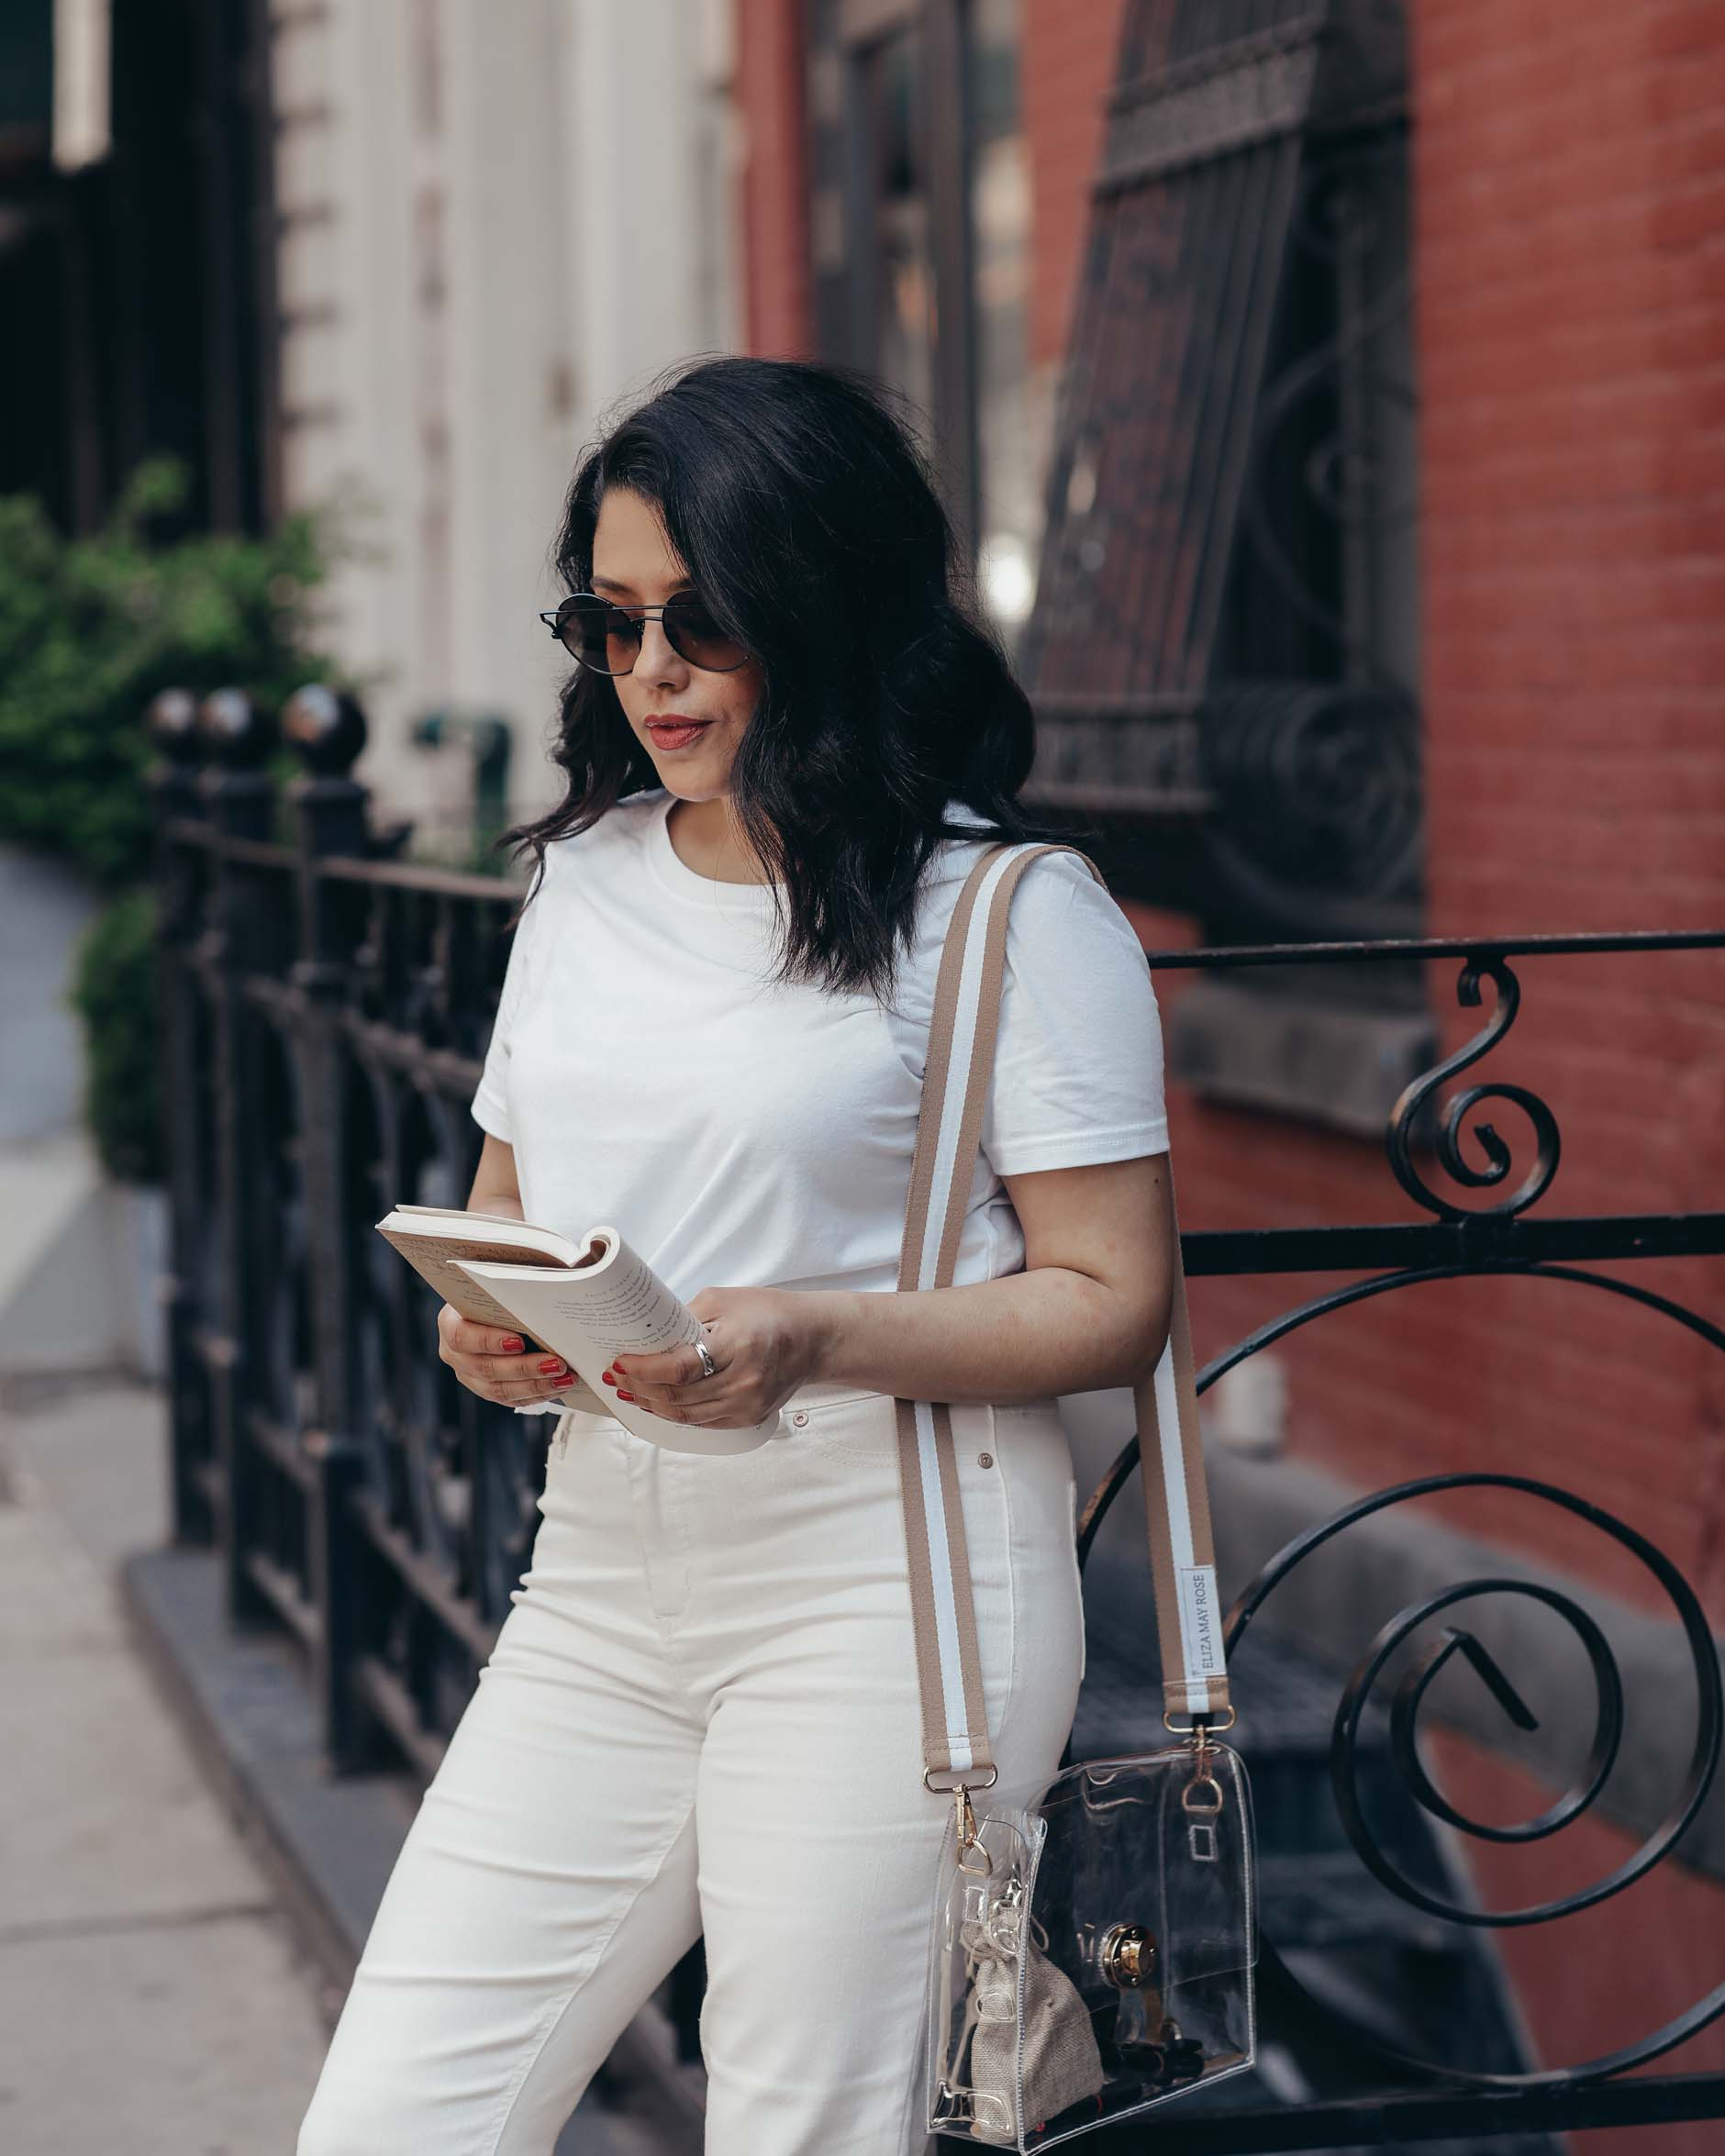 naty michele in soho ny wearing all white for we dress america